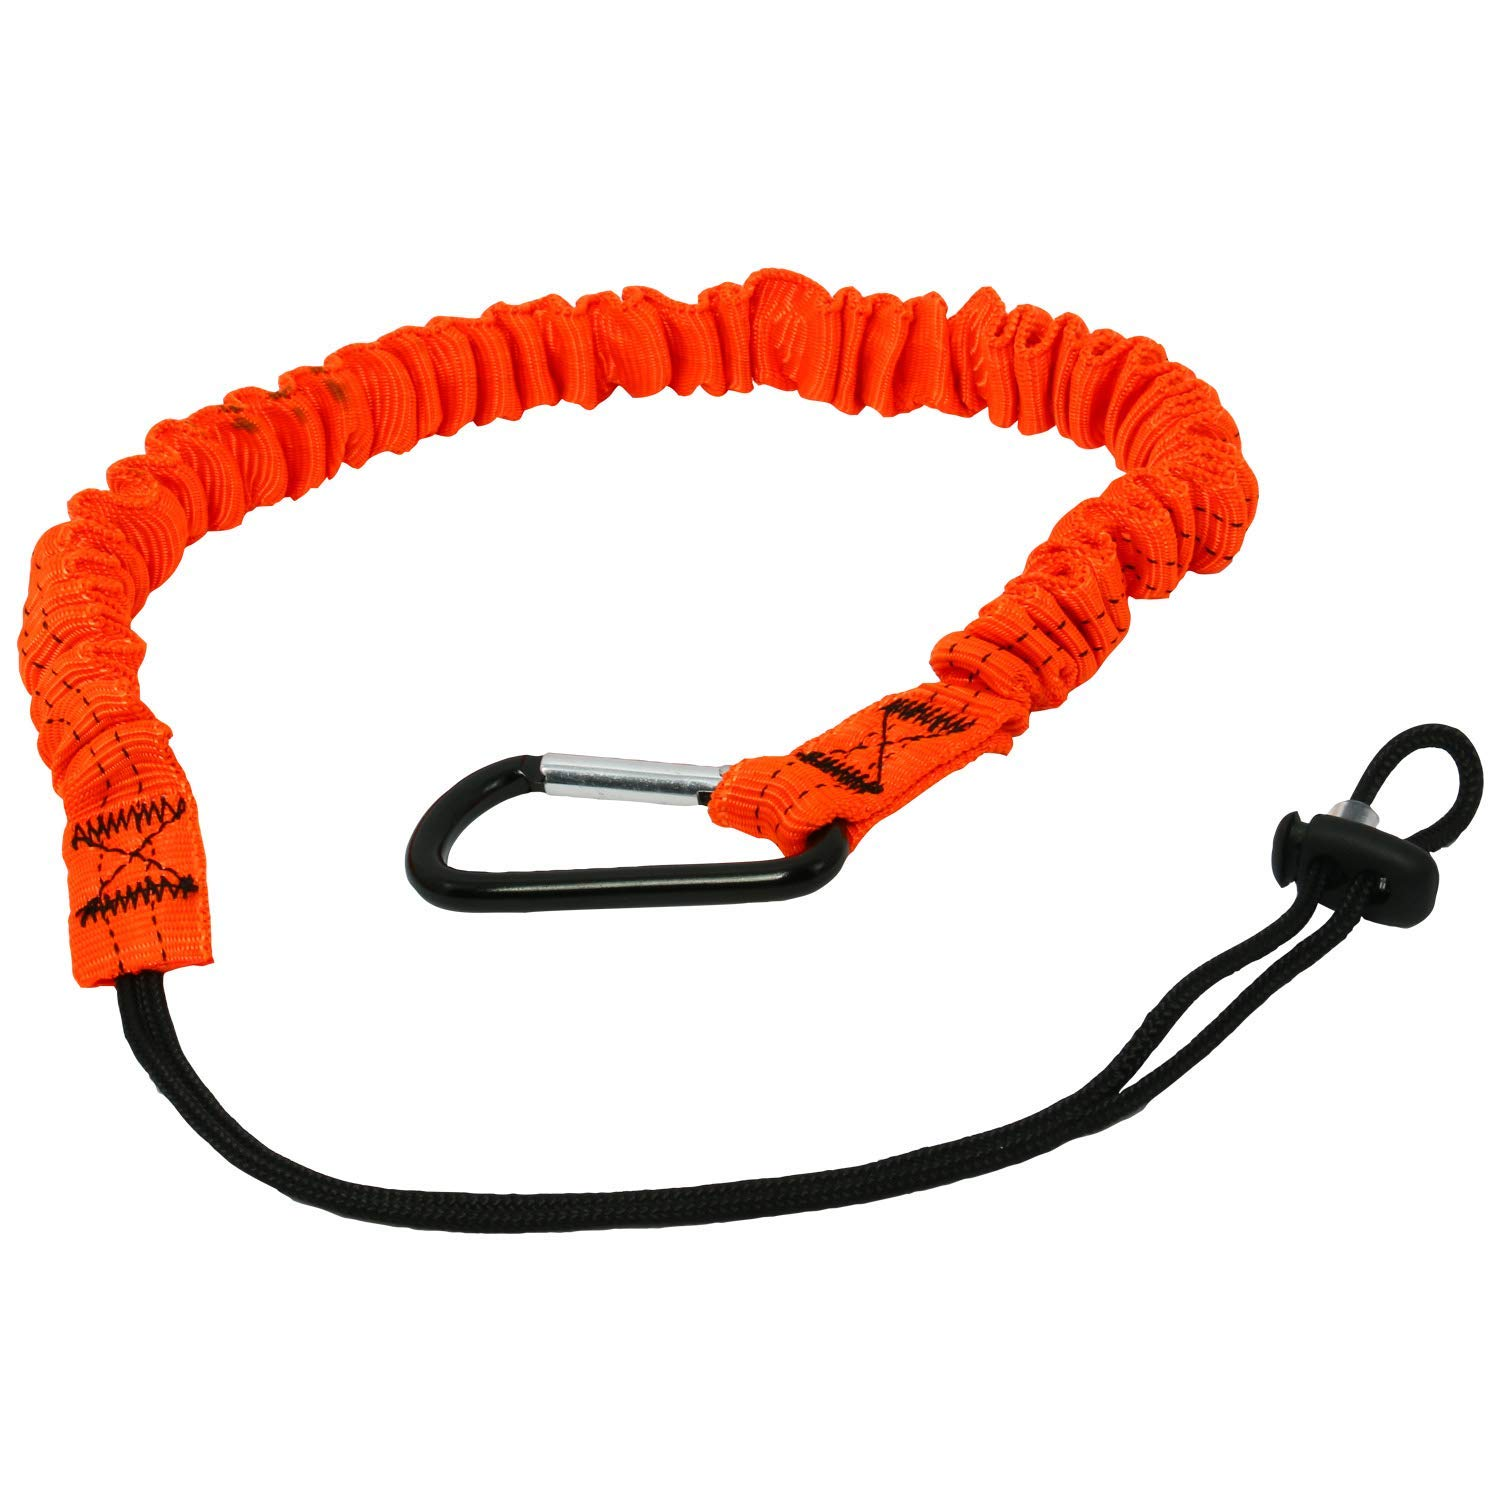 Tool Lanyard with Carabiner Clip and Adjustable Loop End//Quick Release Shock Absorbing Safety Retractable Tool Leash,Tools Fall Protection Equipment,5 Pack